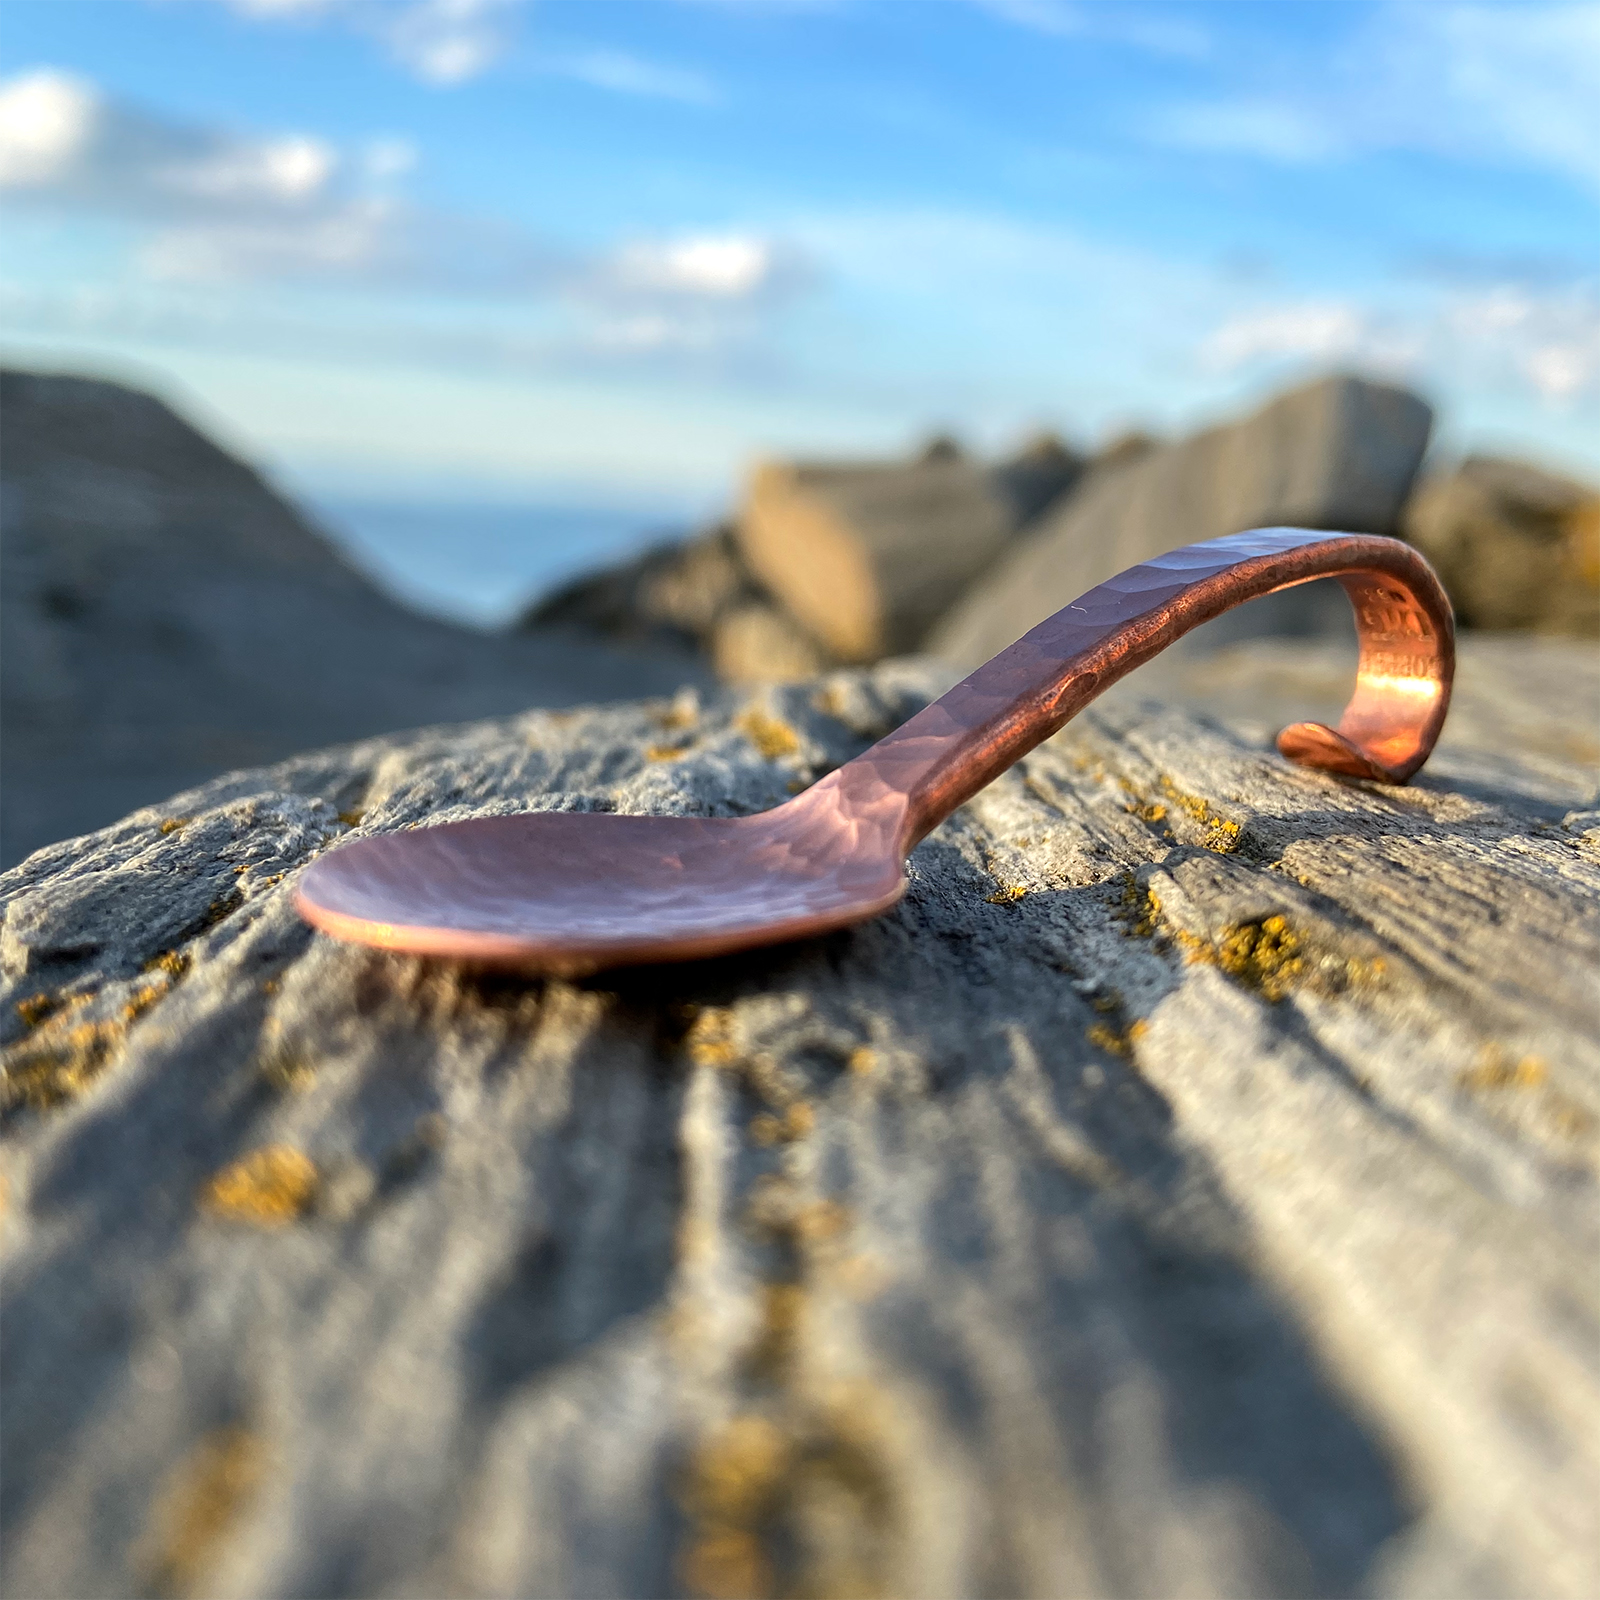 Copper Loop Spoon